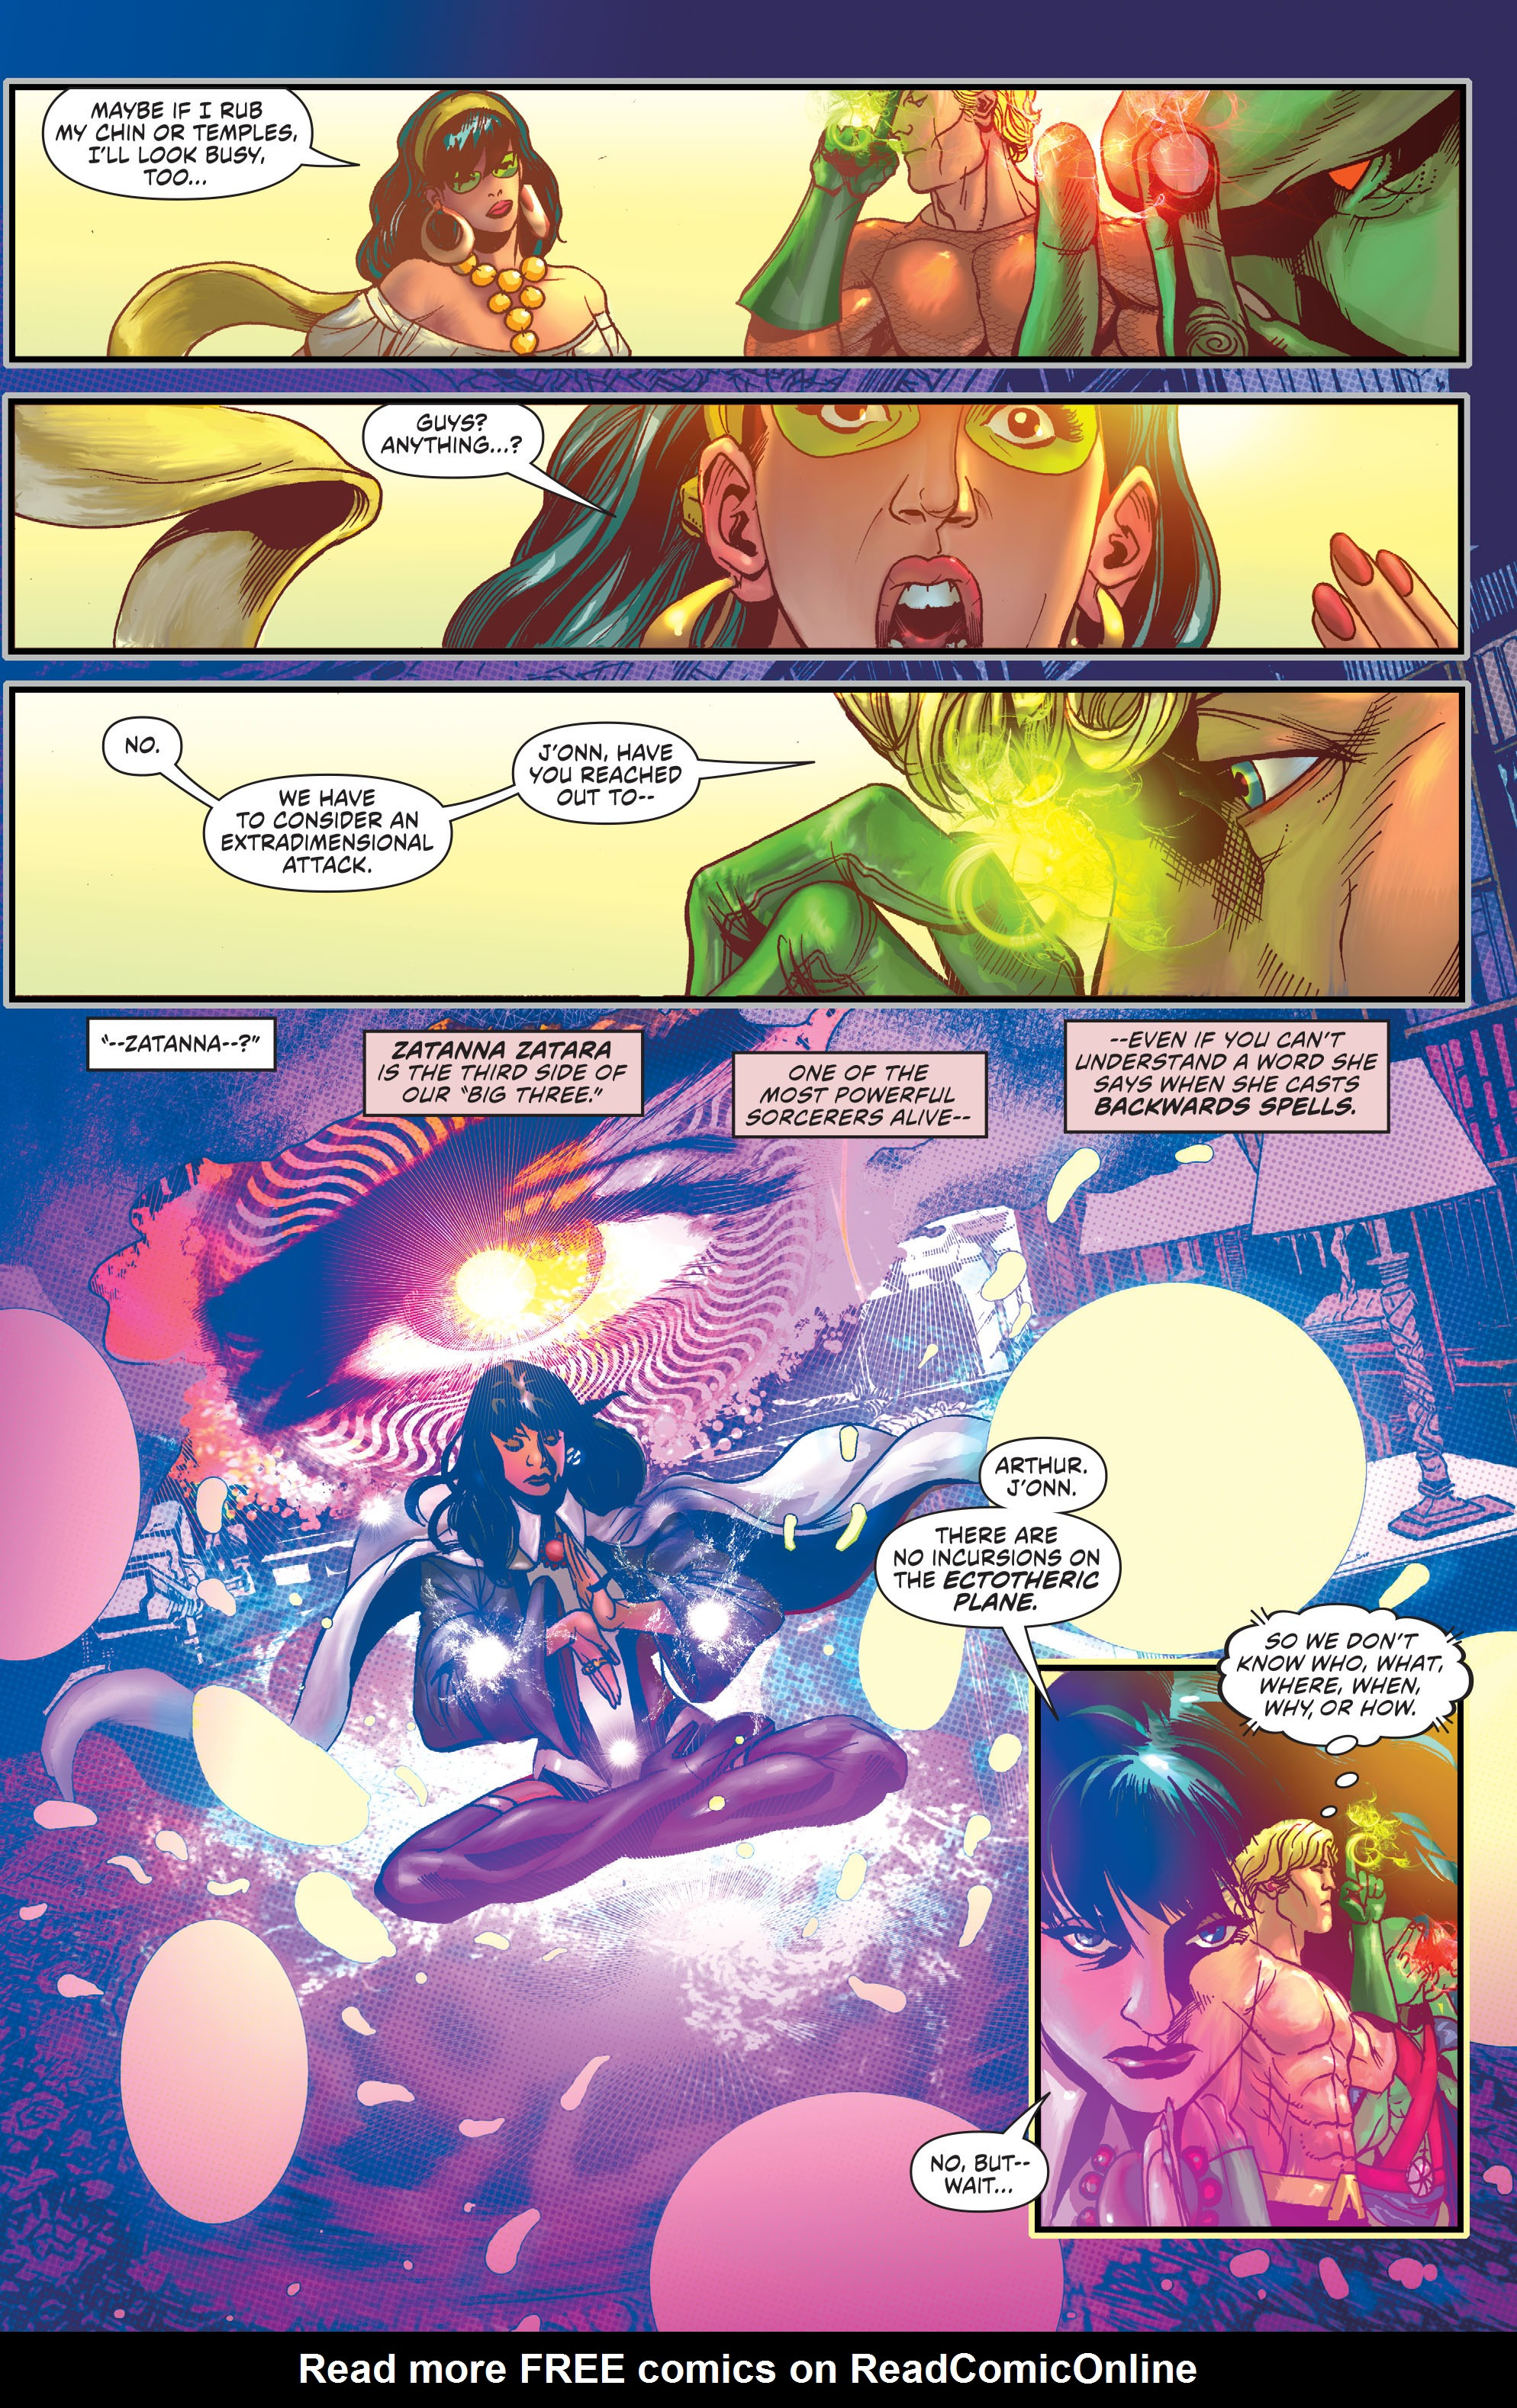 Convergence Justice League of America Issue 1 | Viewcomic